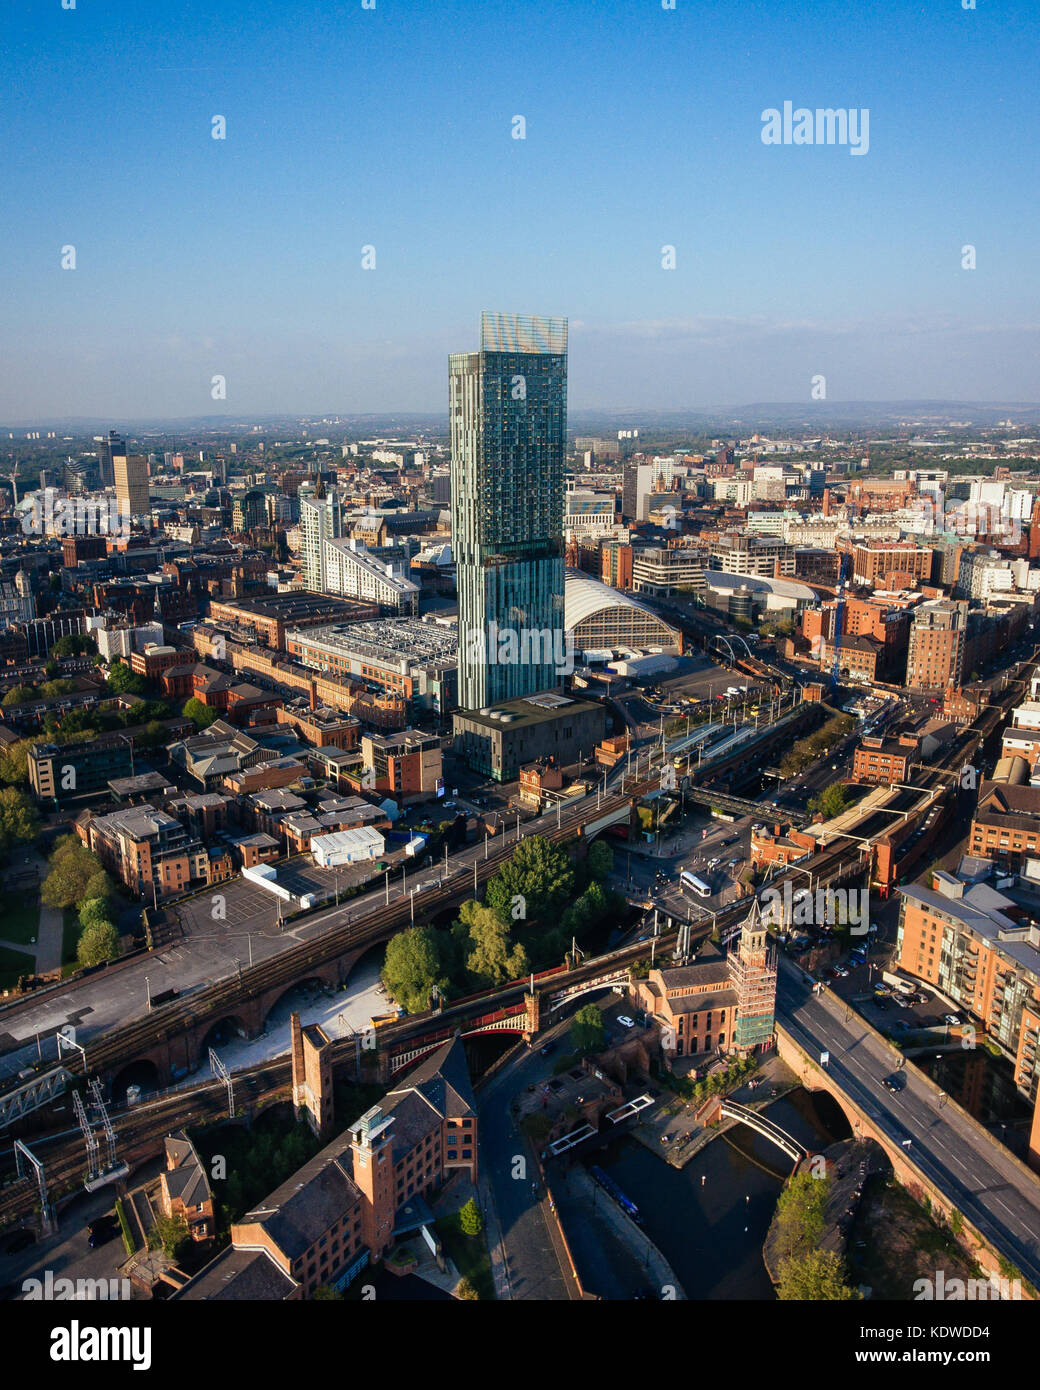 A drone view of the Manchester skyline on a summer day. - Stock Image